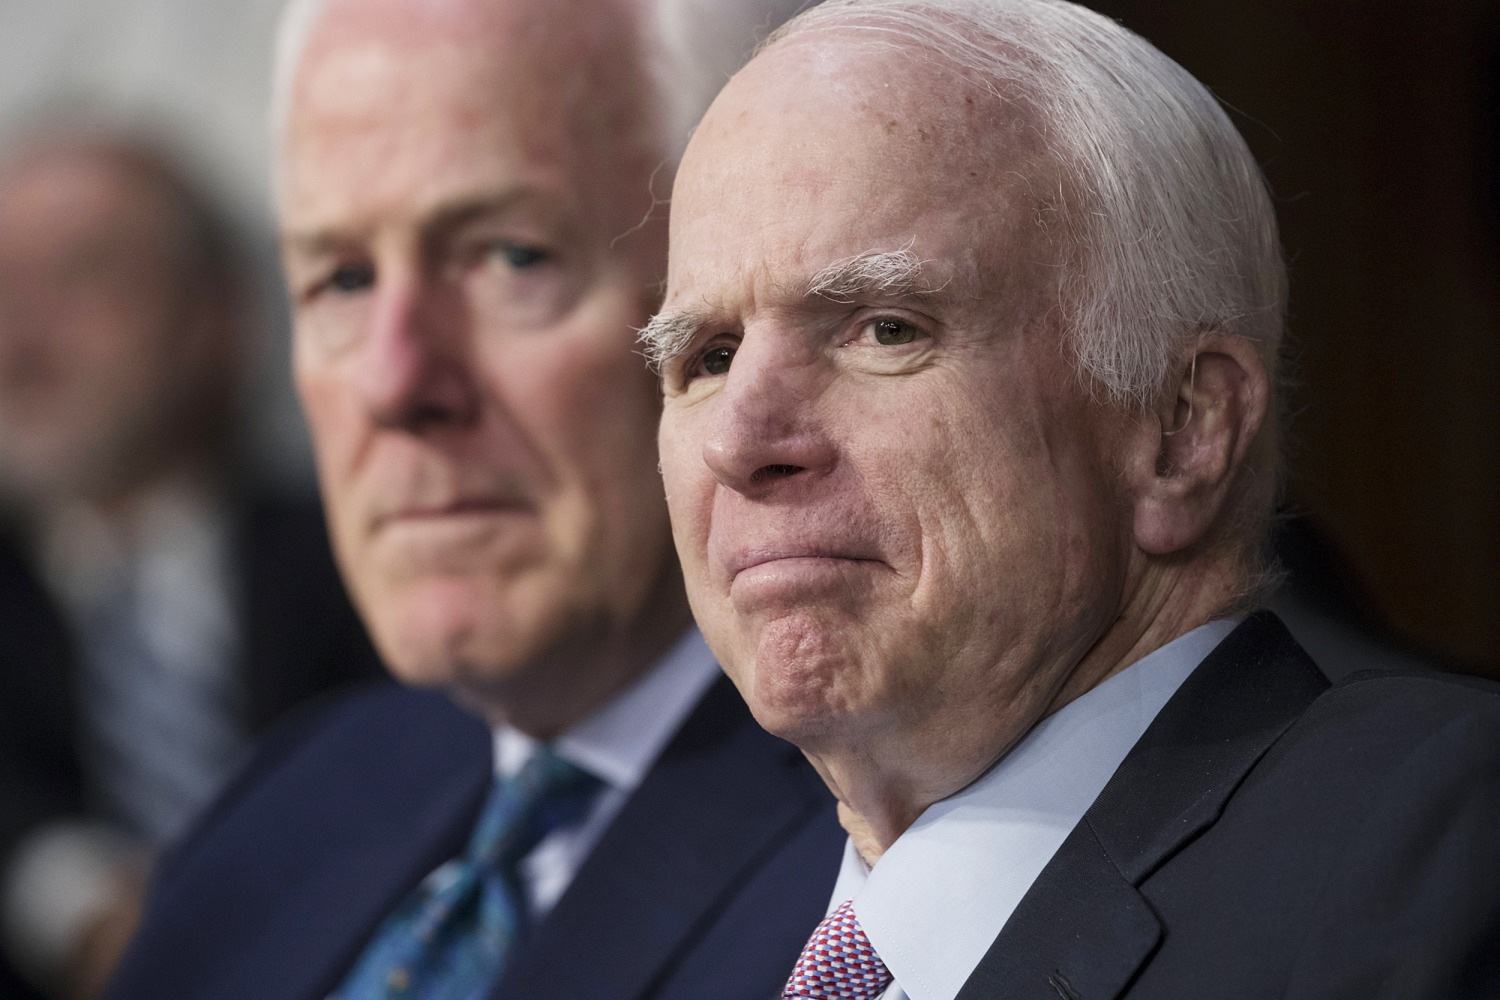 Doctors remove blood clot above Sen. McCain's eye